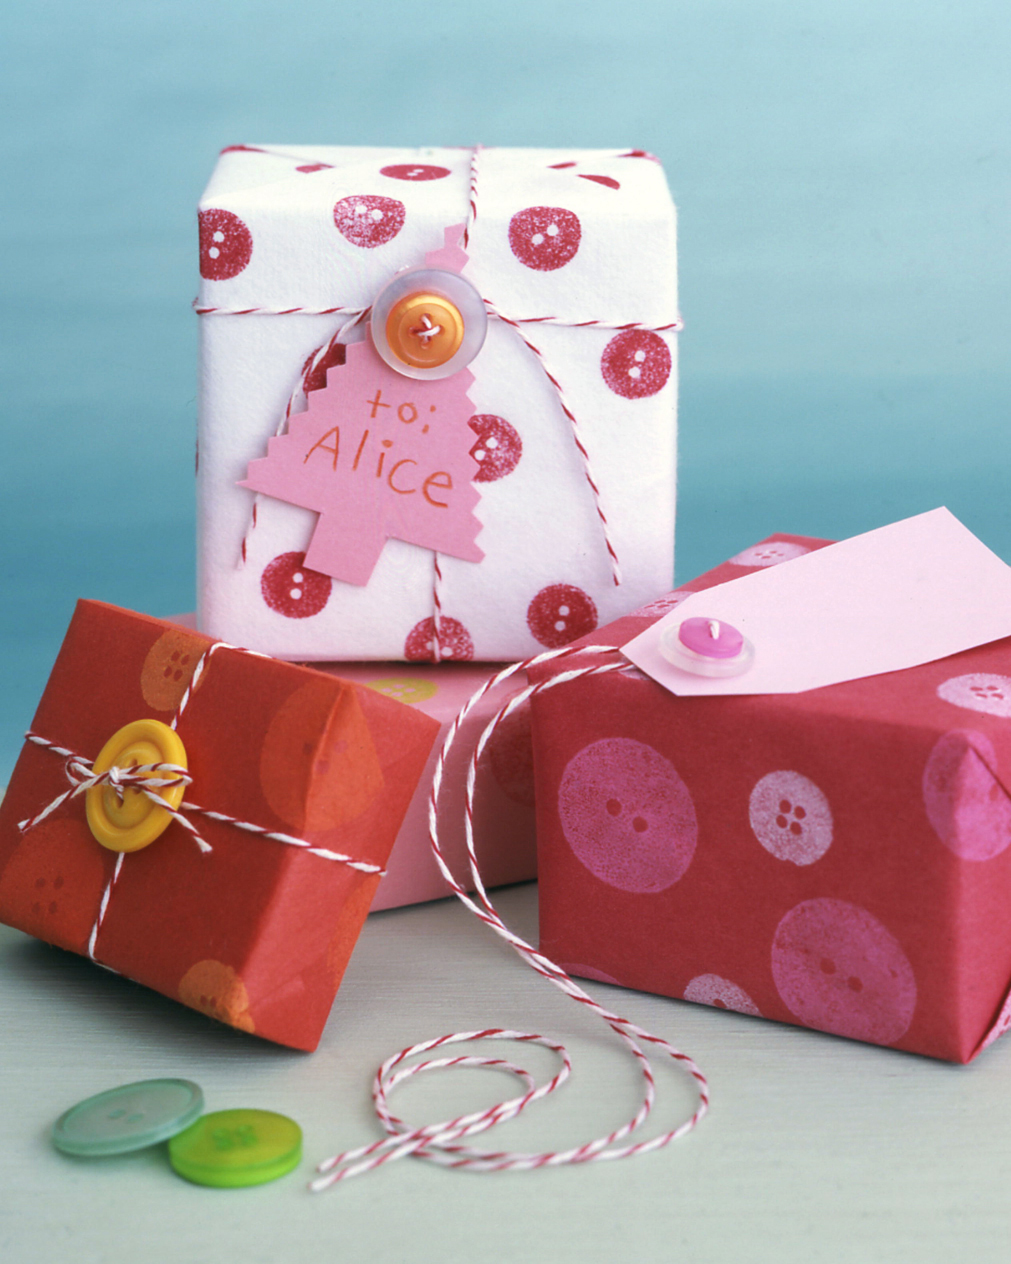 Gift-Wrapping Ideas | Martha Stewart